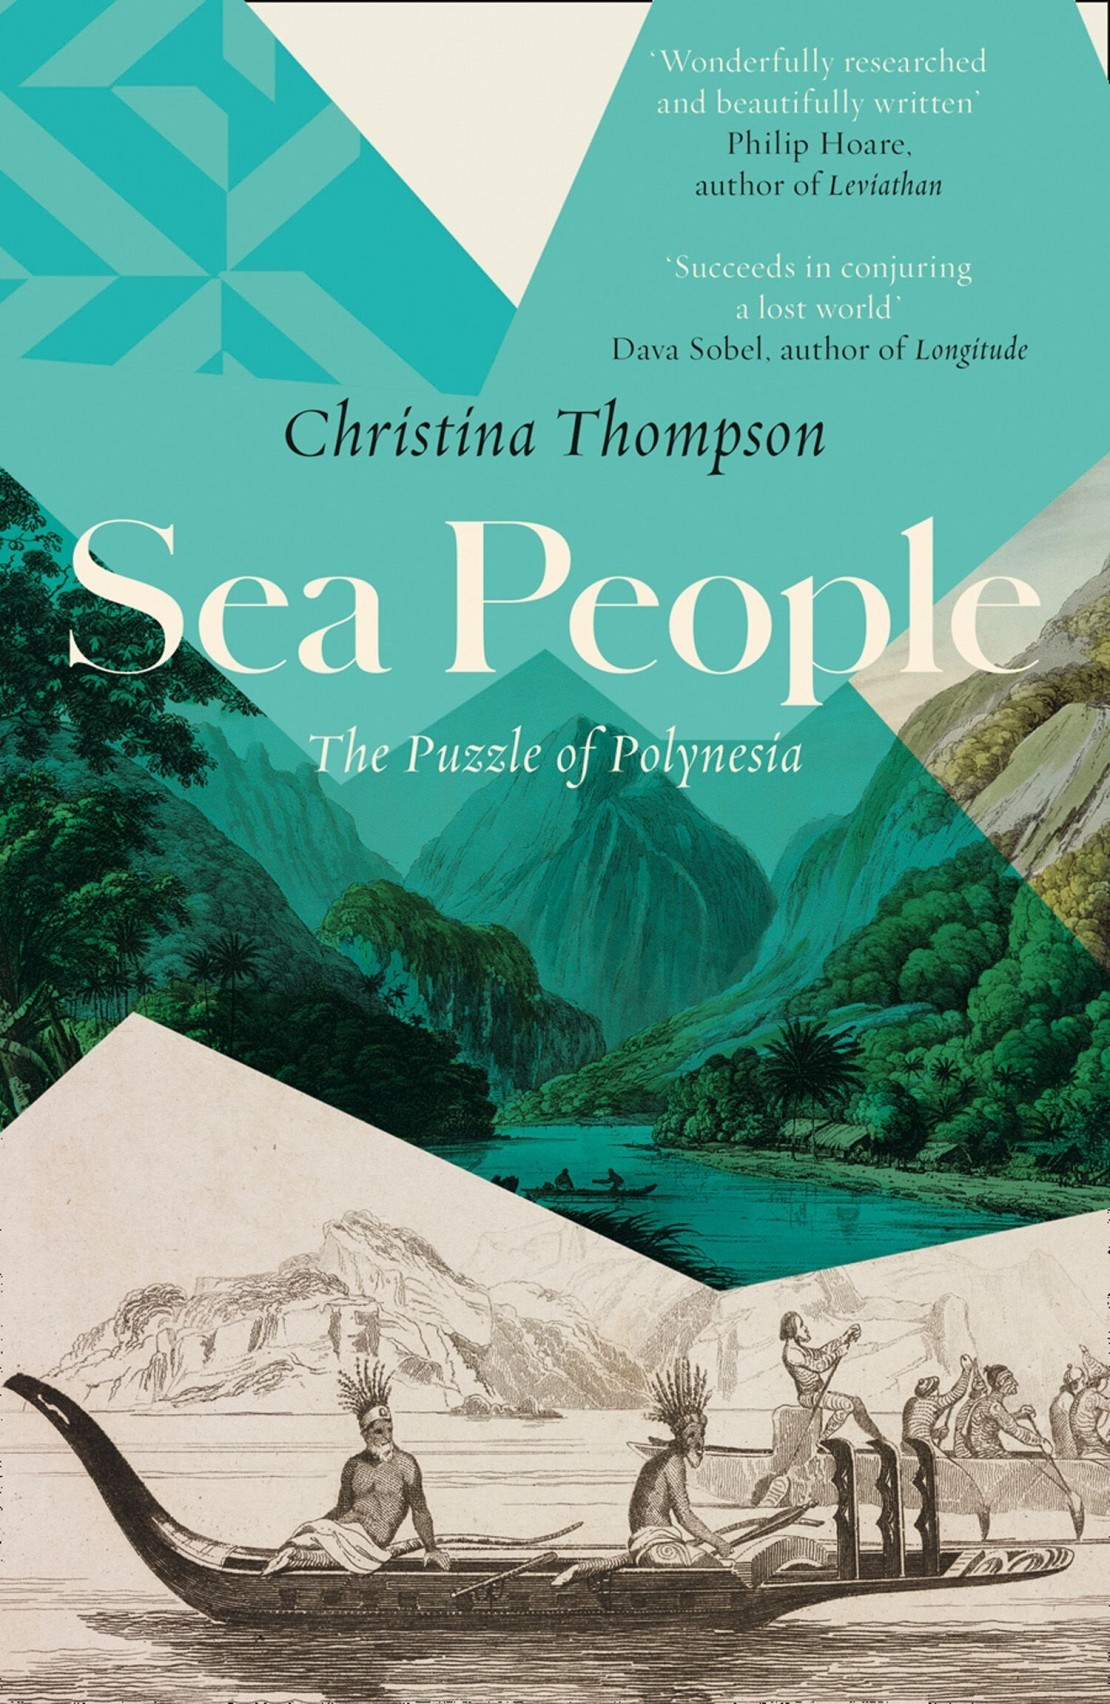 Sea People The Puzzle of Polynesia by Christina Thompson HarperCollins